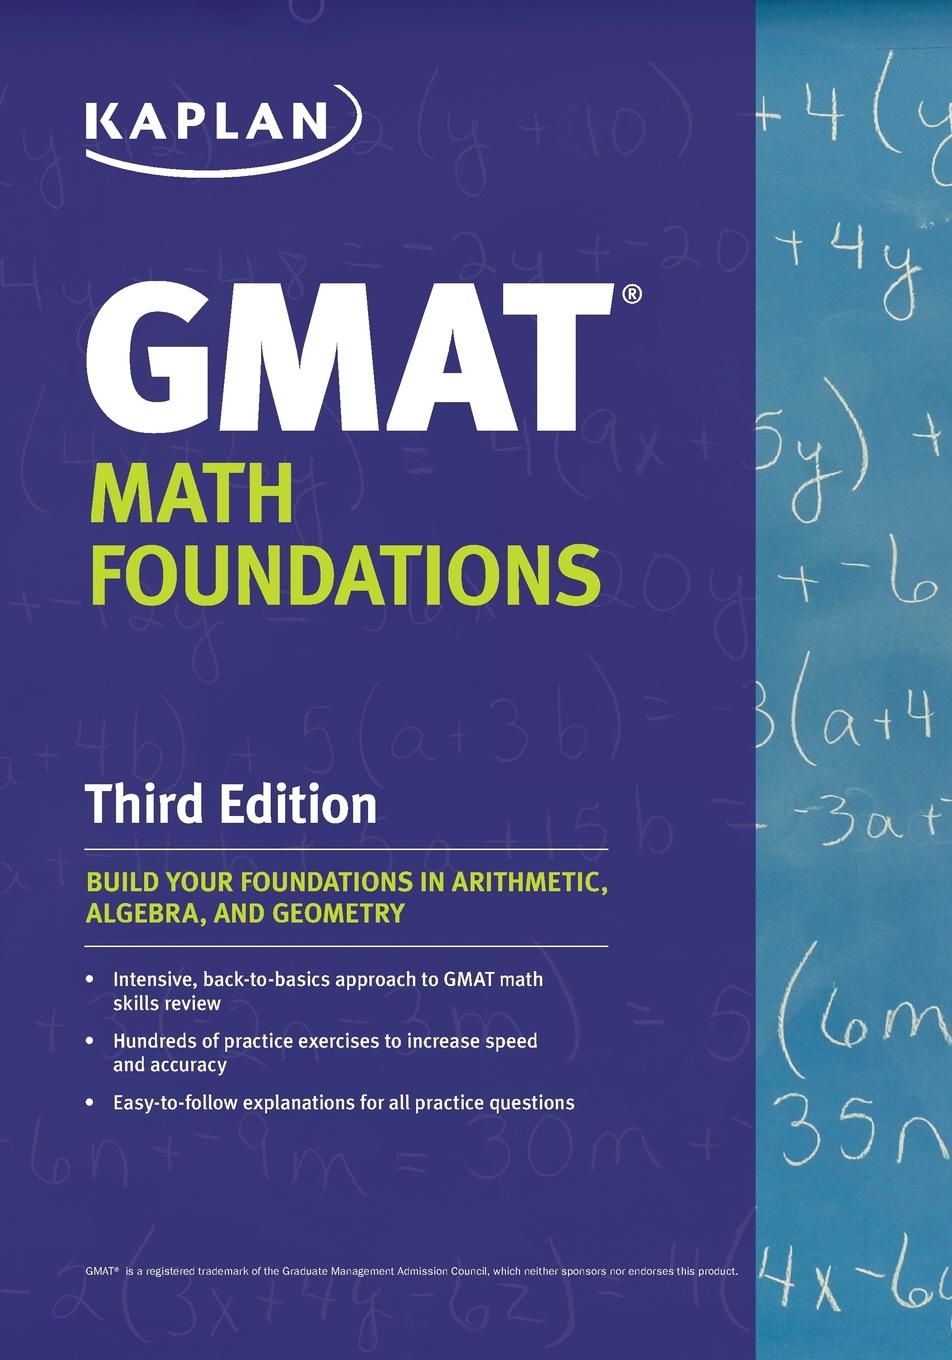 Kaplan Kaplan GMAT Math Foundations how to teach your baby math